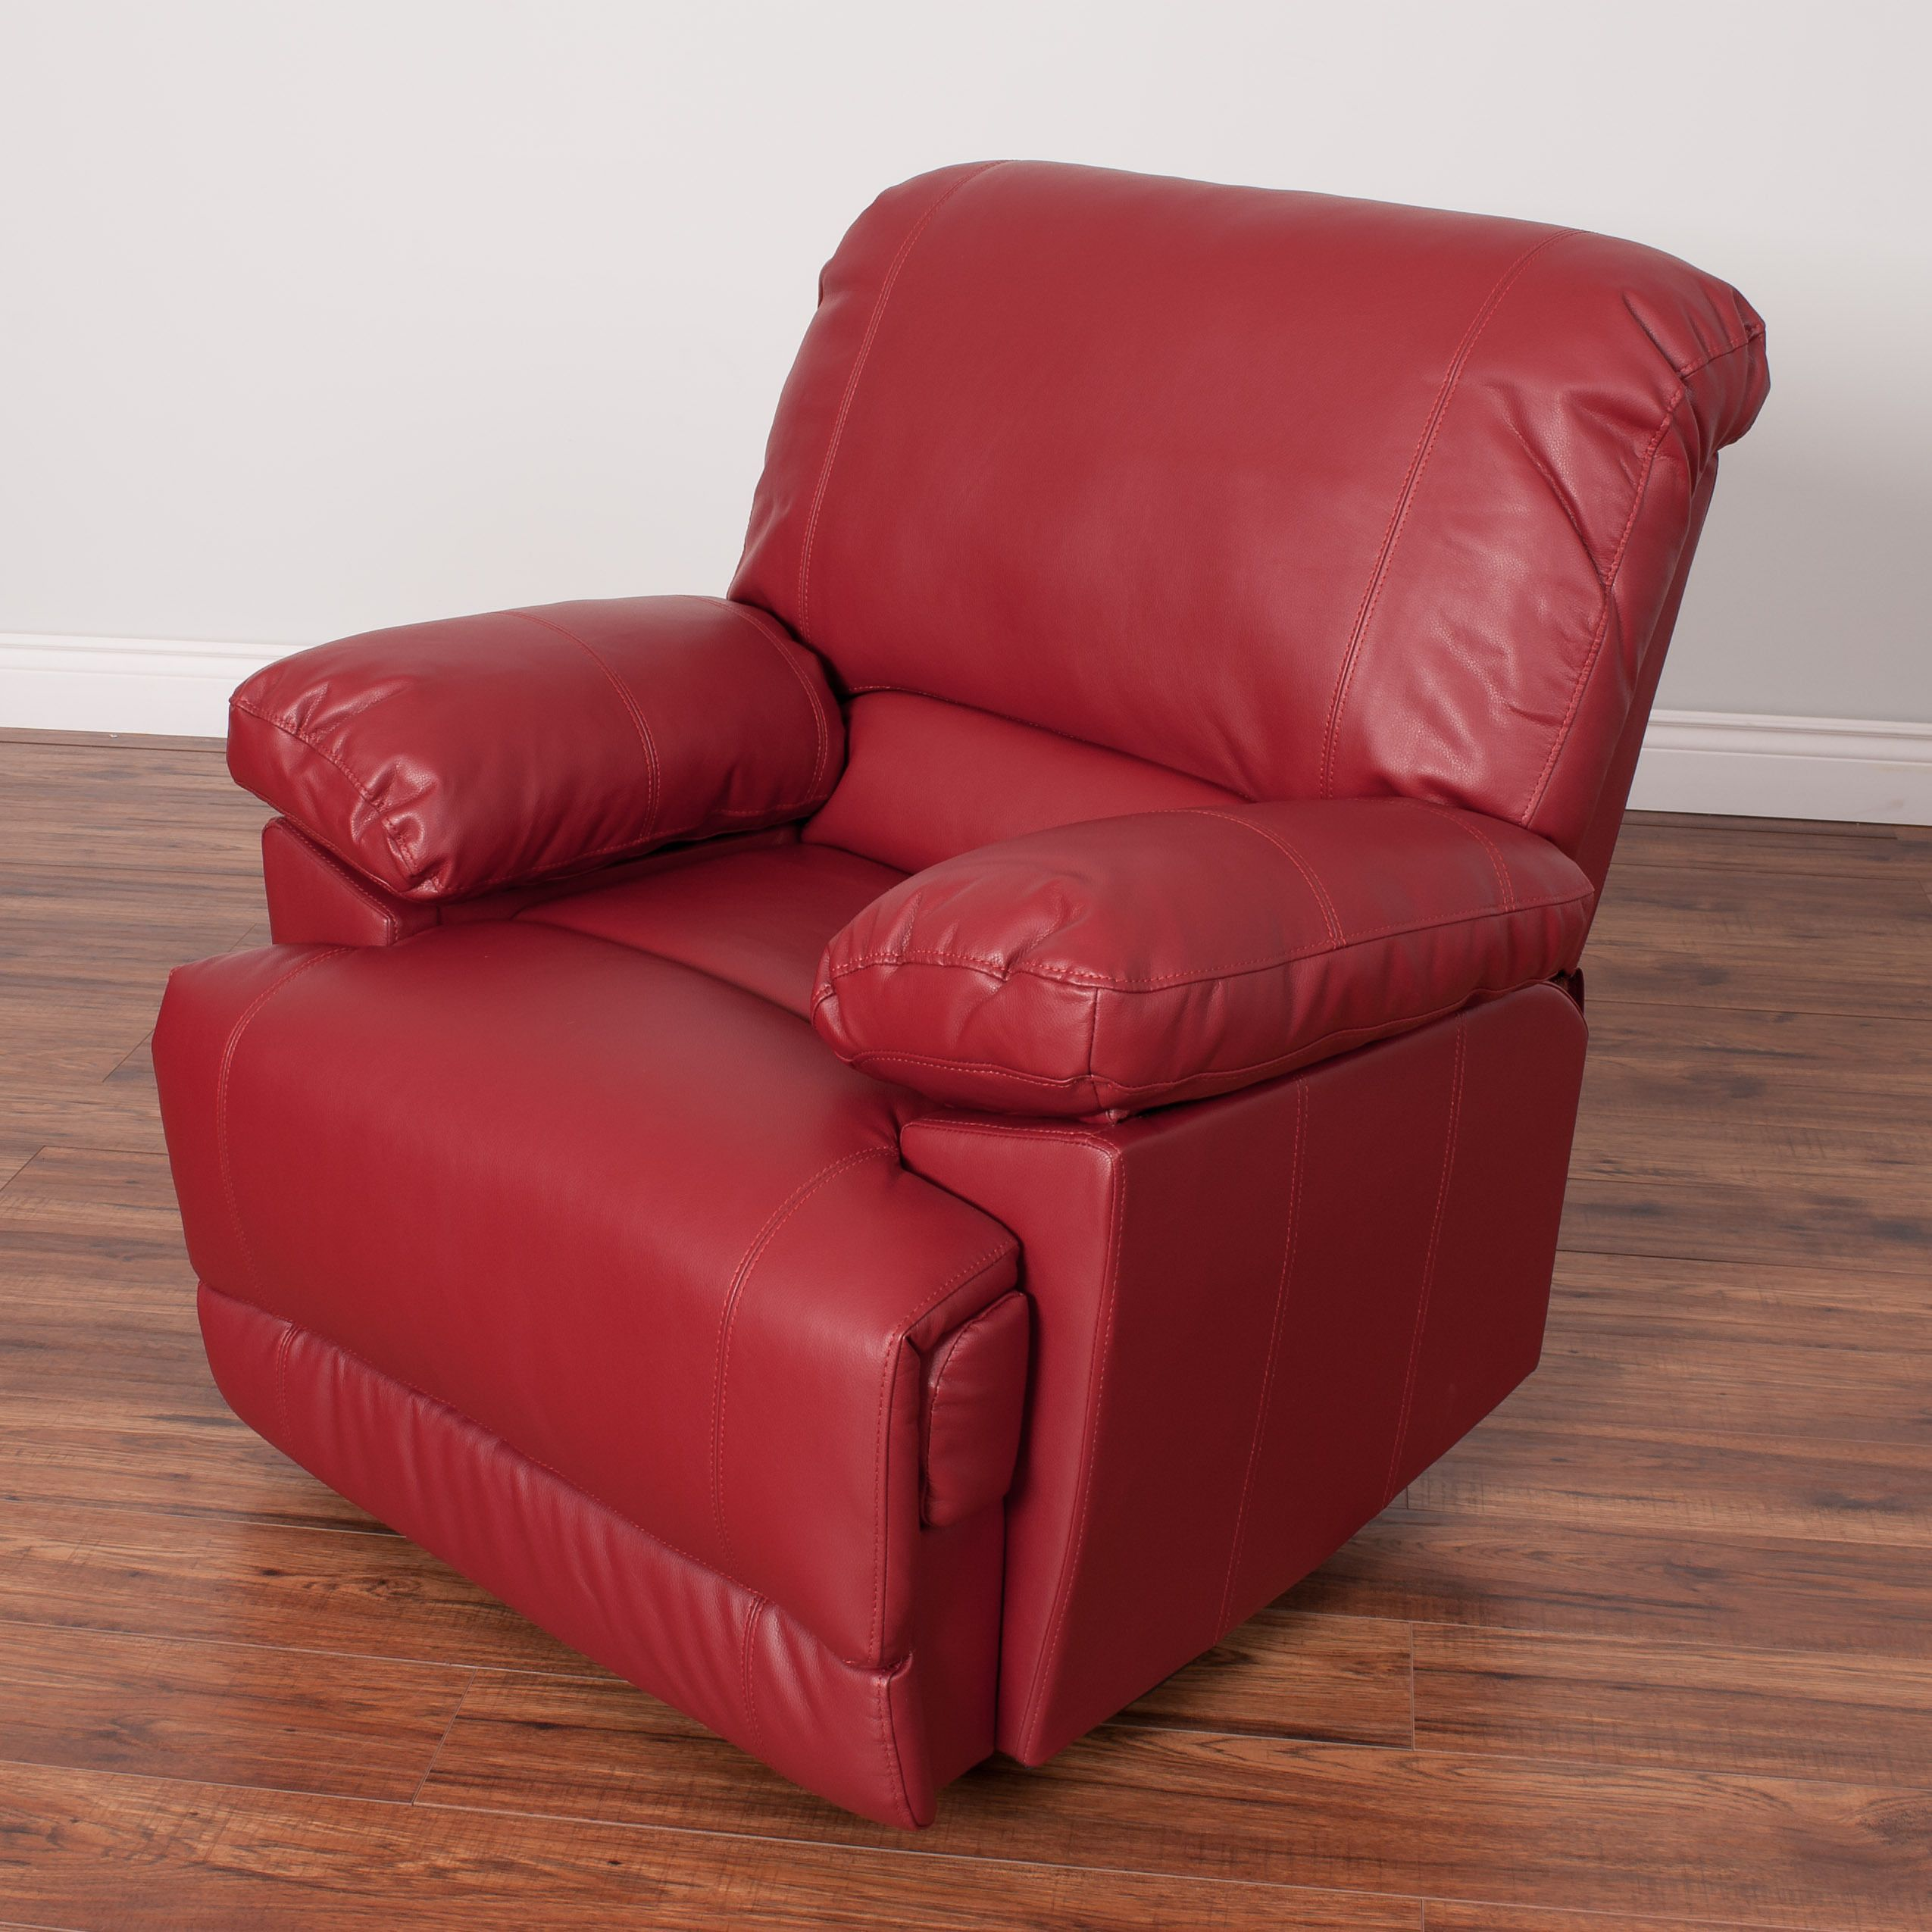 Corliving lea bonded leather reclining chair red with